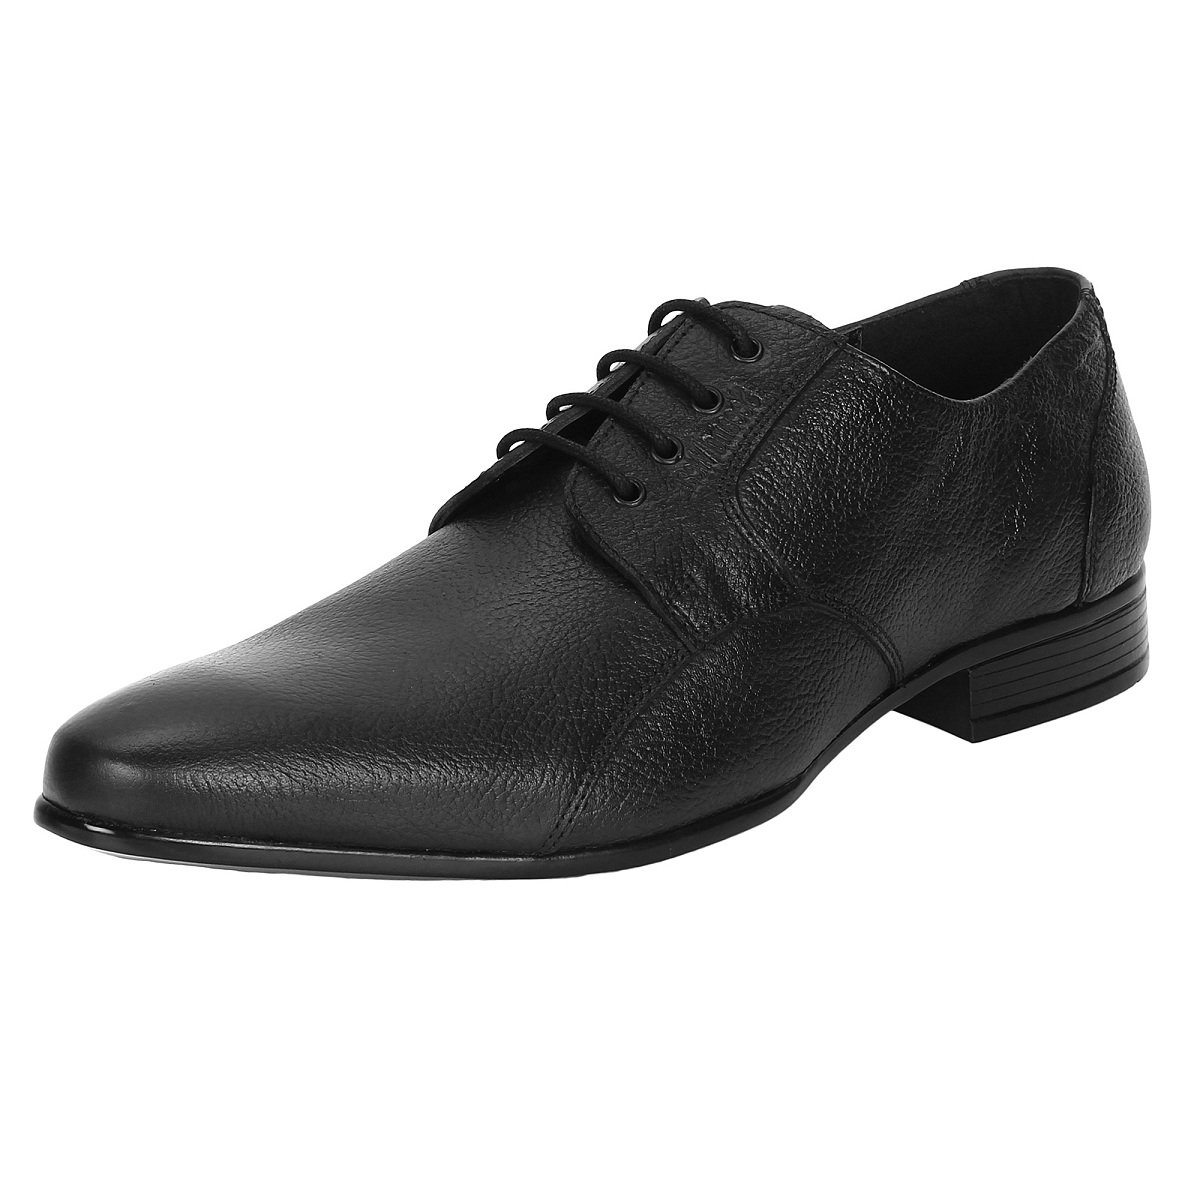 de6feac42ca SeeandWear Formal Shoes for Men. Genuine Leather Black Brown Branded Lace  up Shoe.